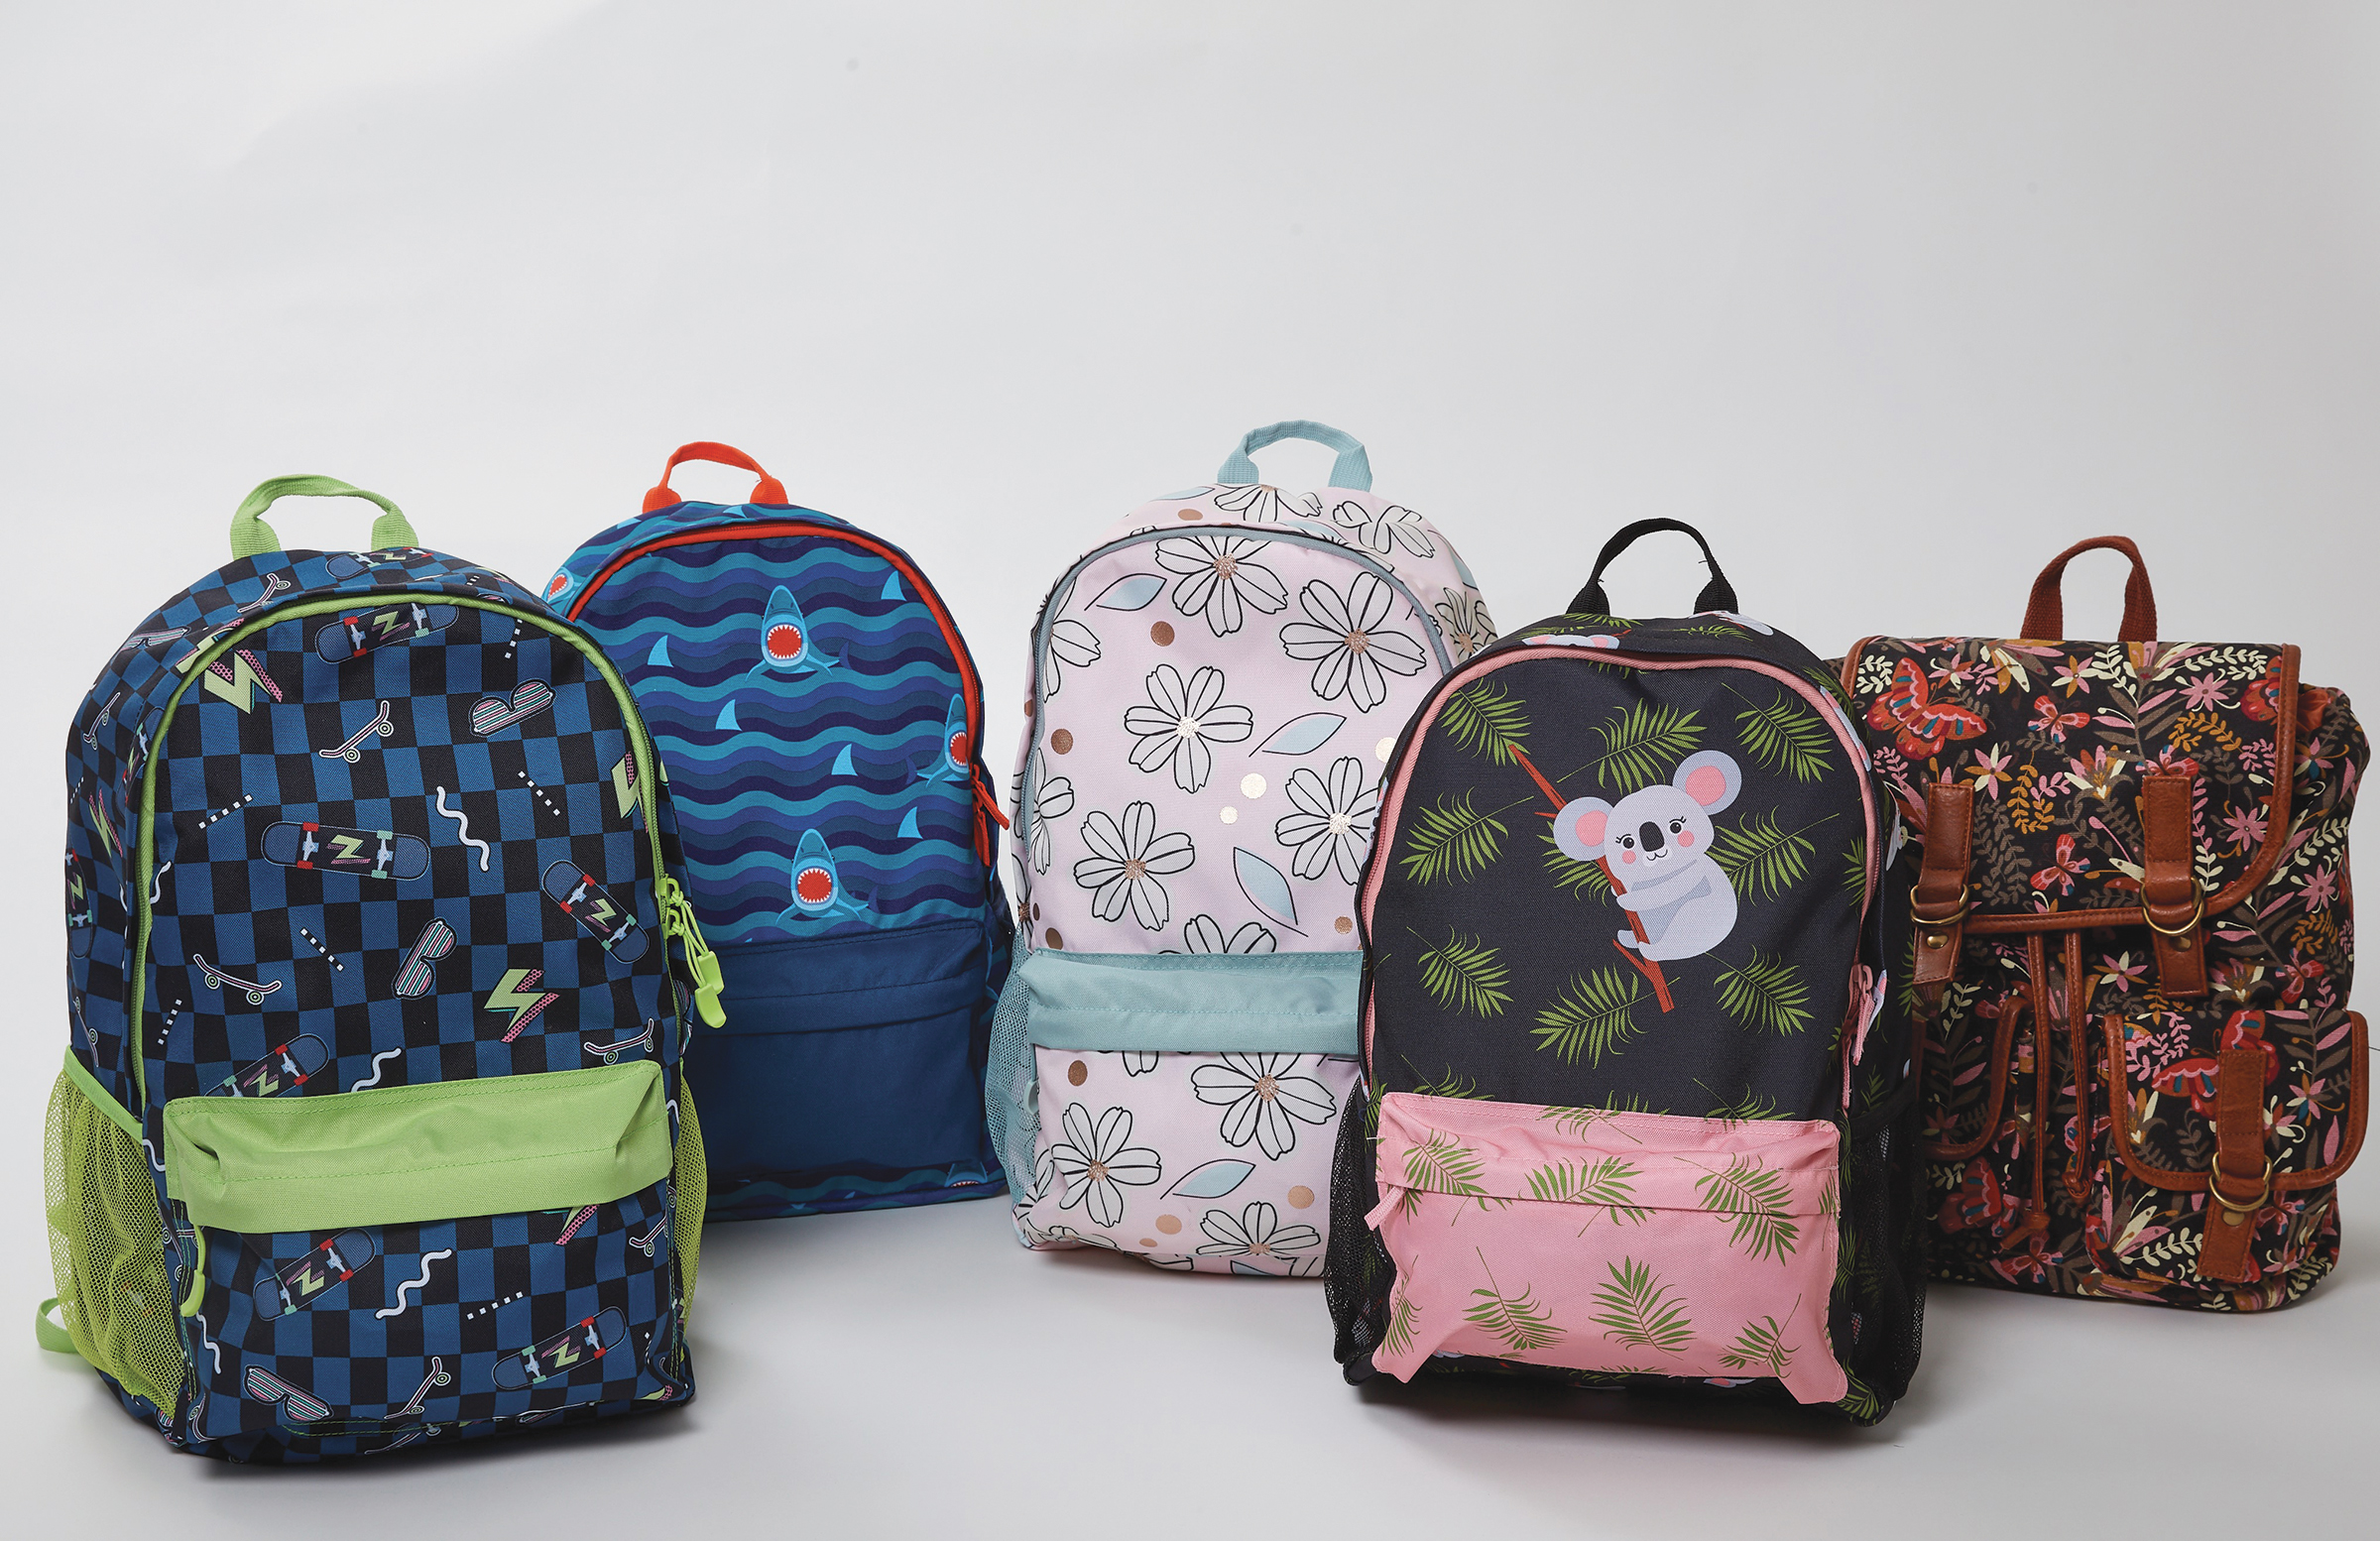 2019 Back to School Trends With Staples pic 2.jpg